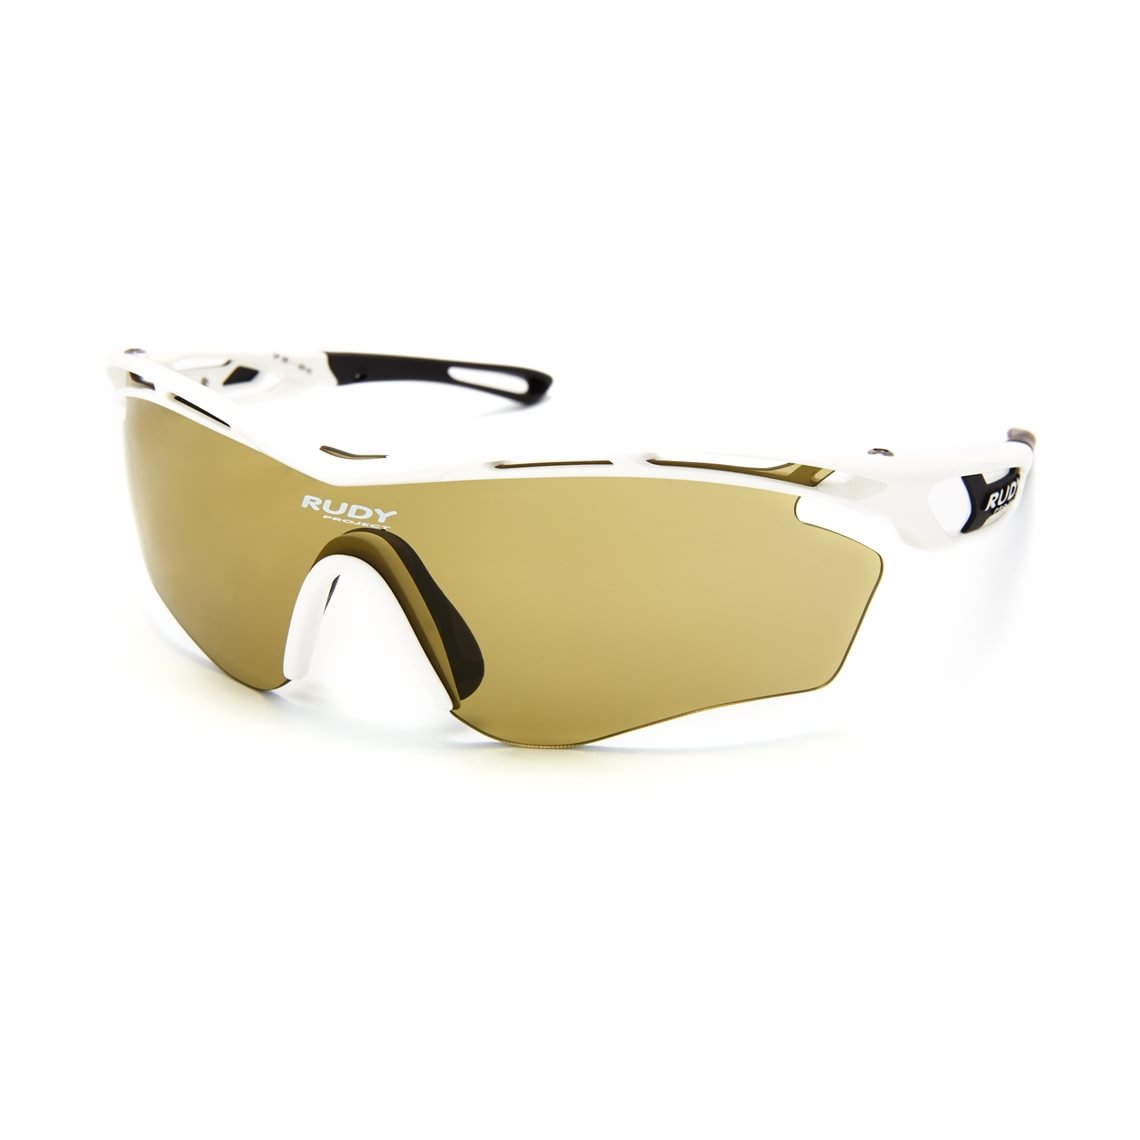 Rudy Project Tralyx Impact X Photochromic Golf SP398569G0001